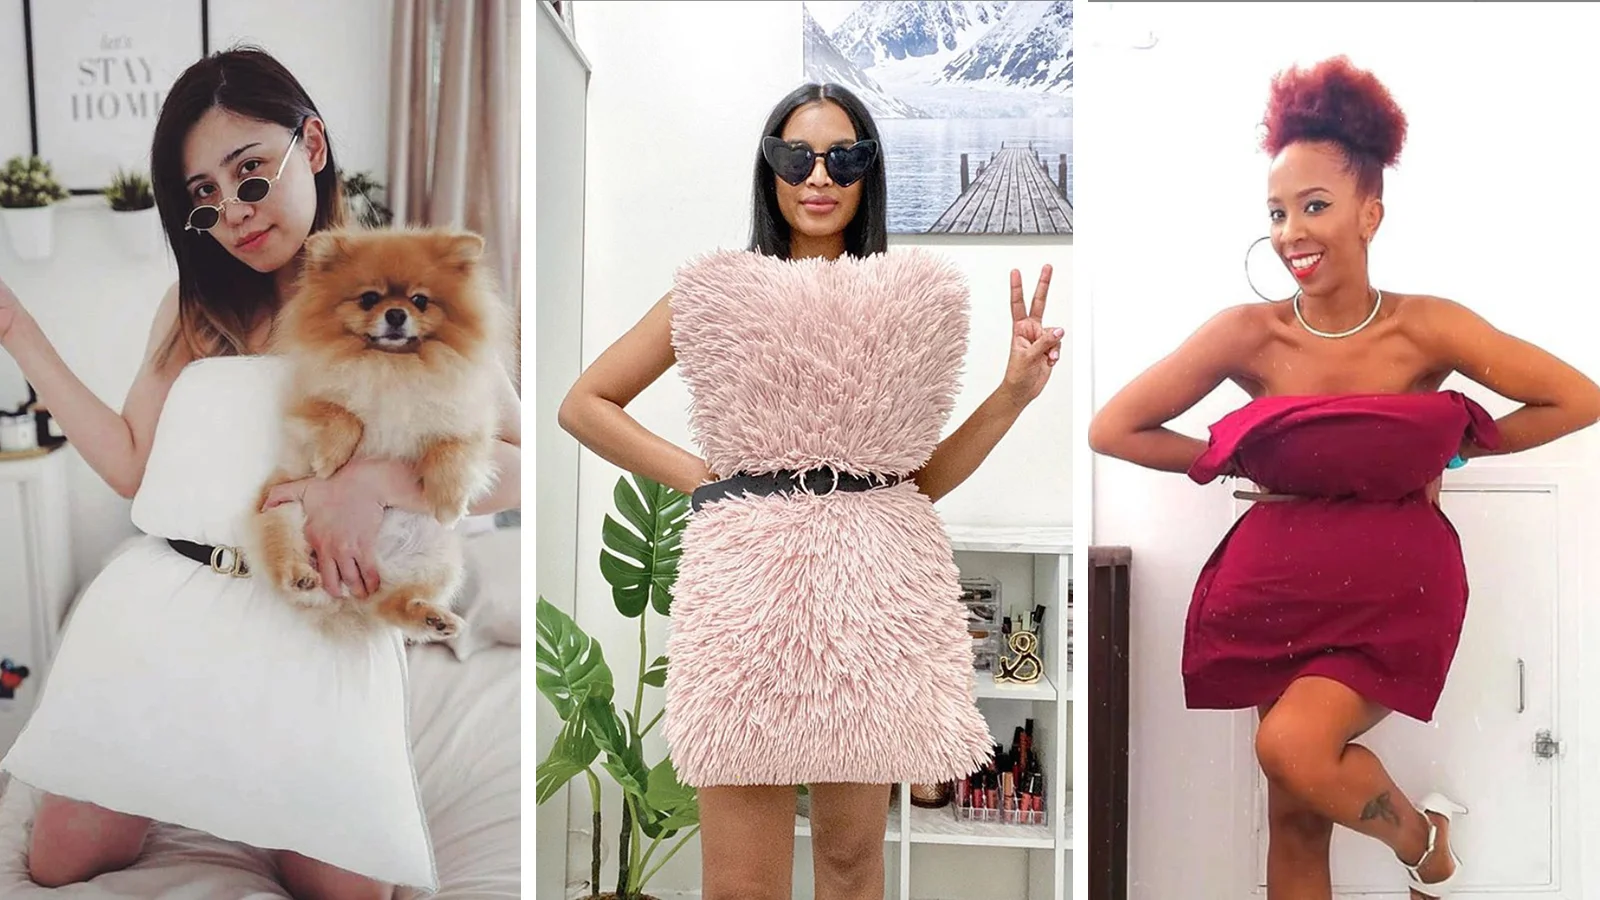 vietnamese and world fashionistas swing social media with pillow challenge quarantined trend